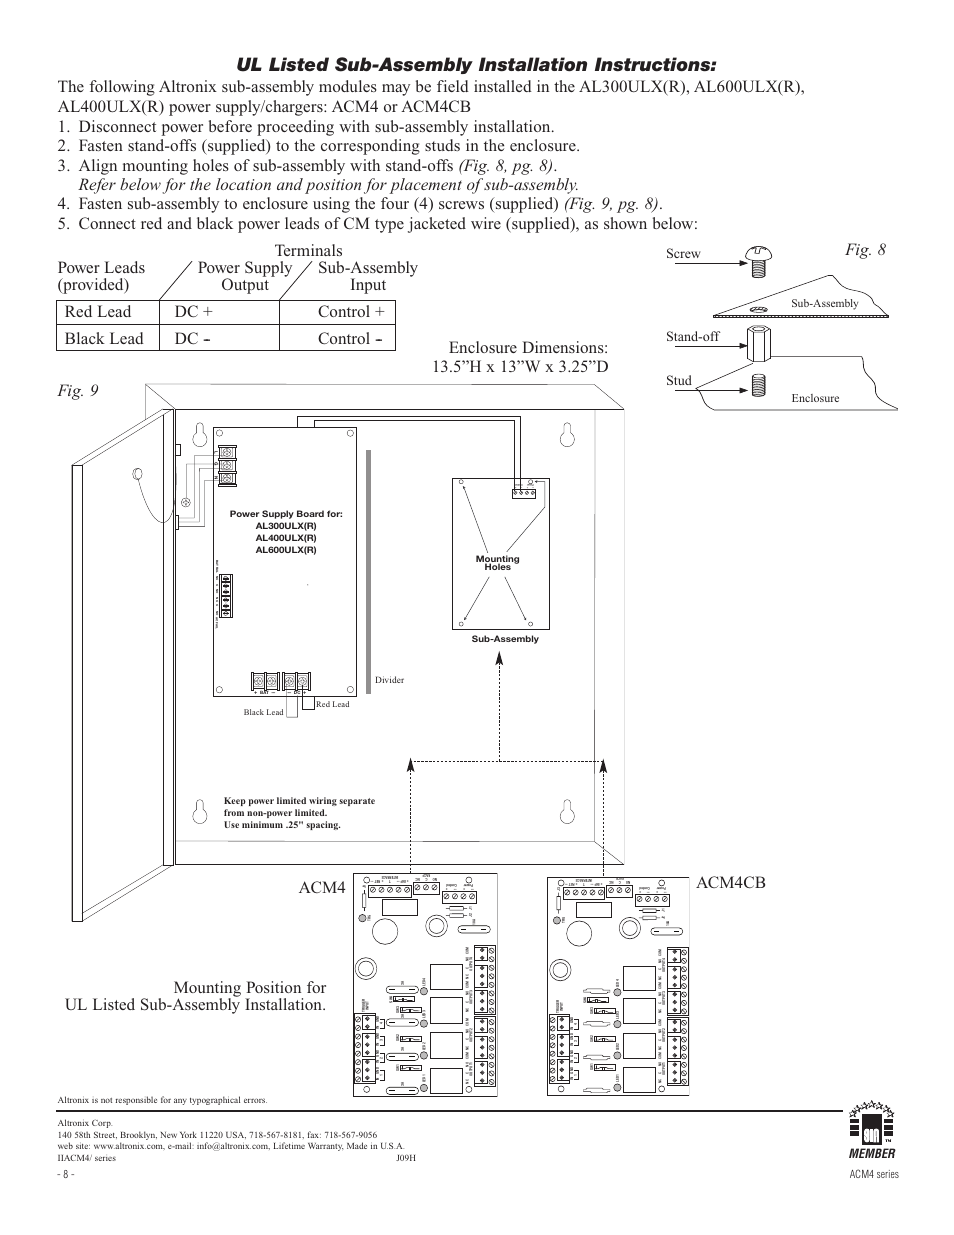 Altronix Relay Wiring Diagram 29 Images Timer Screw Acm4e Installation Instructions Page8 Ul Listed Sub Assembly Acm4cb